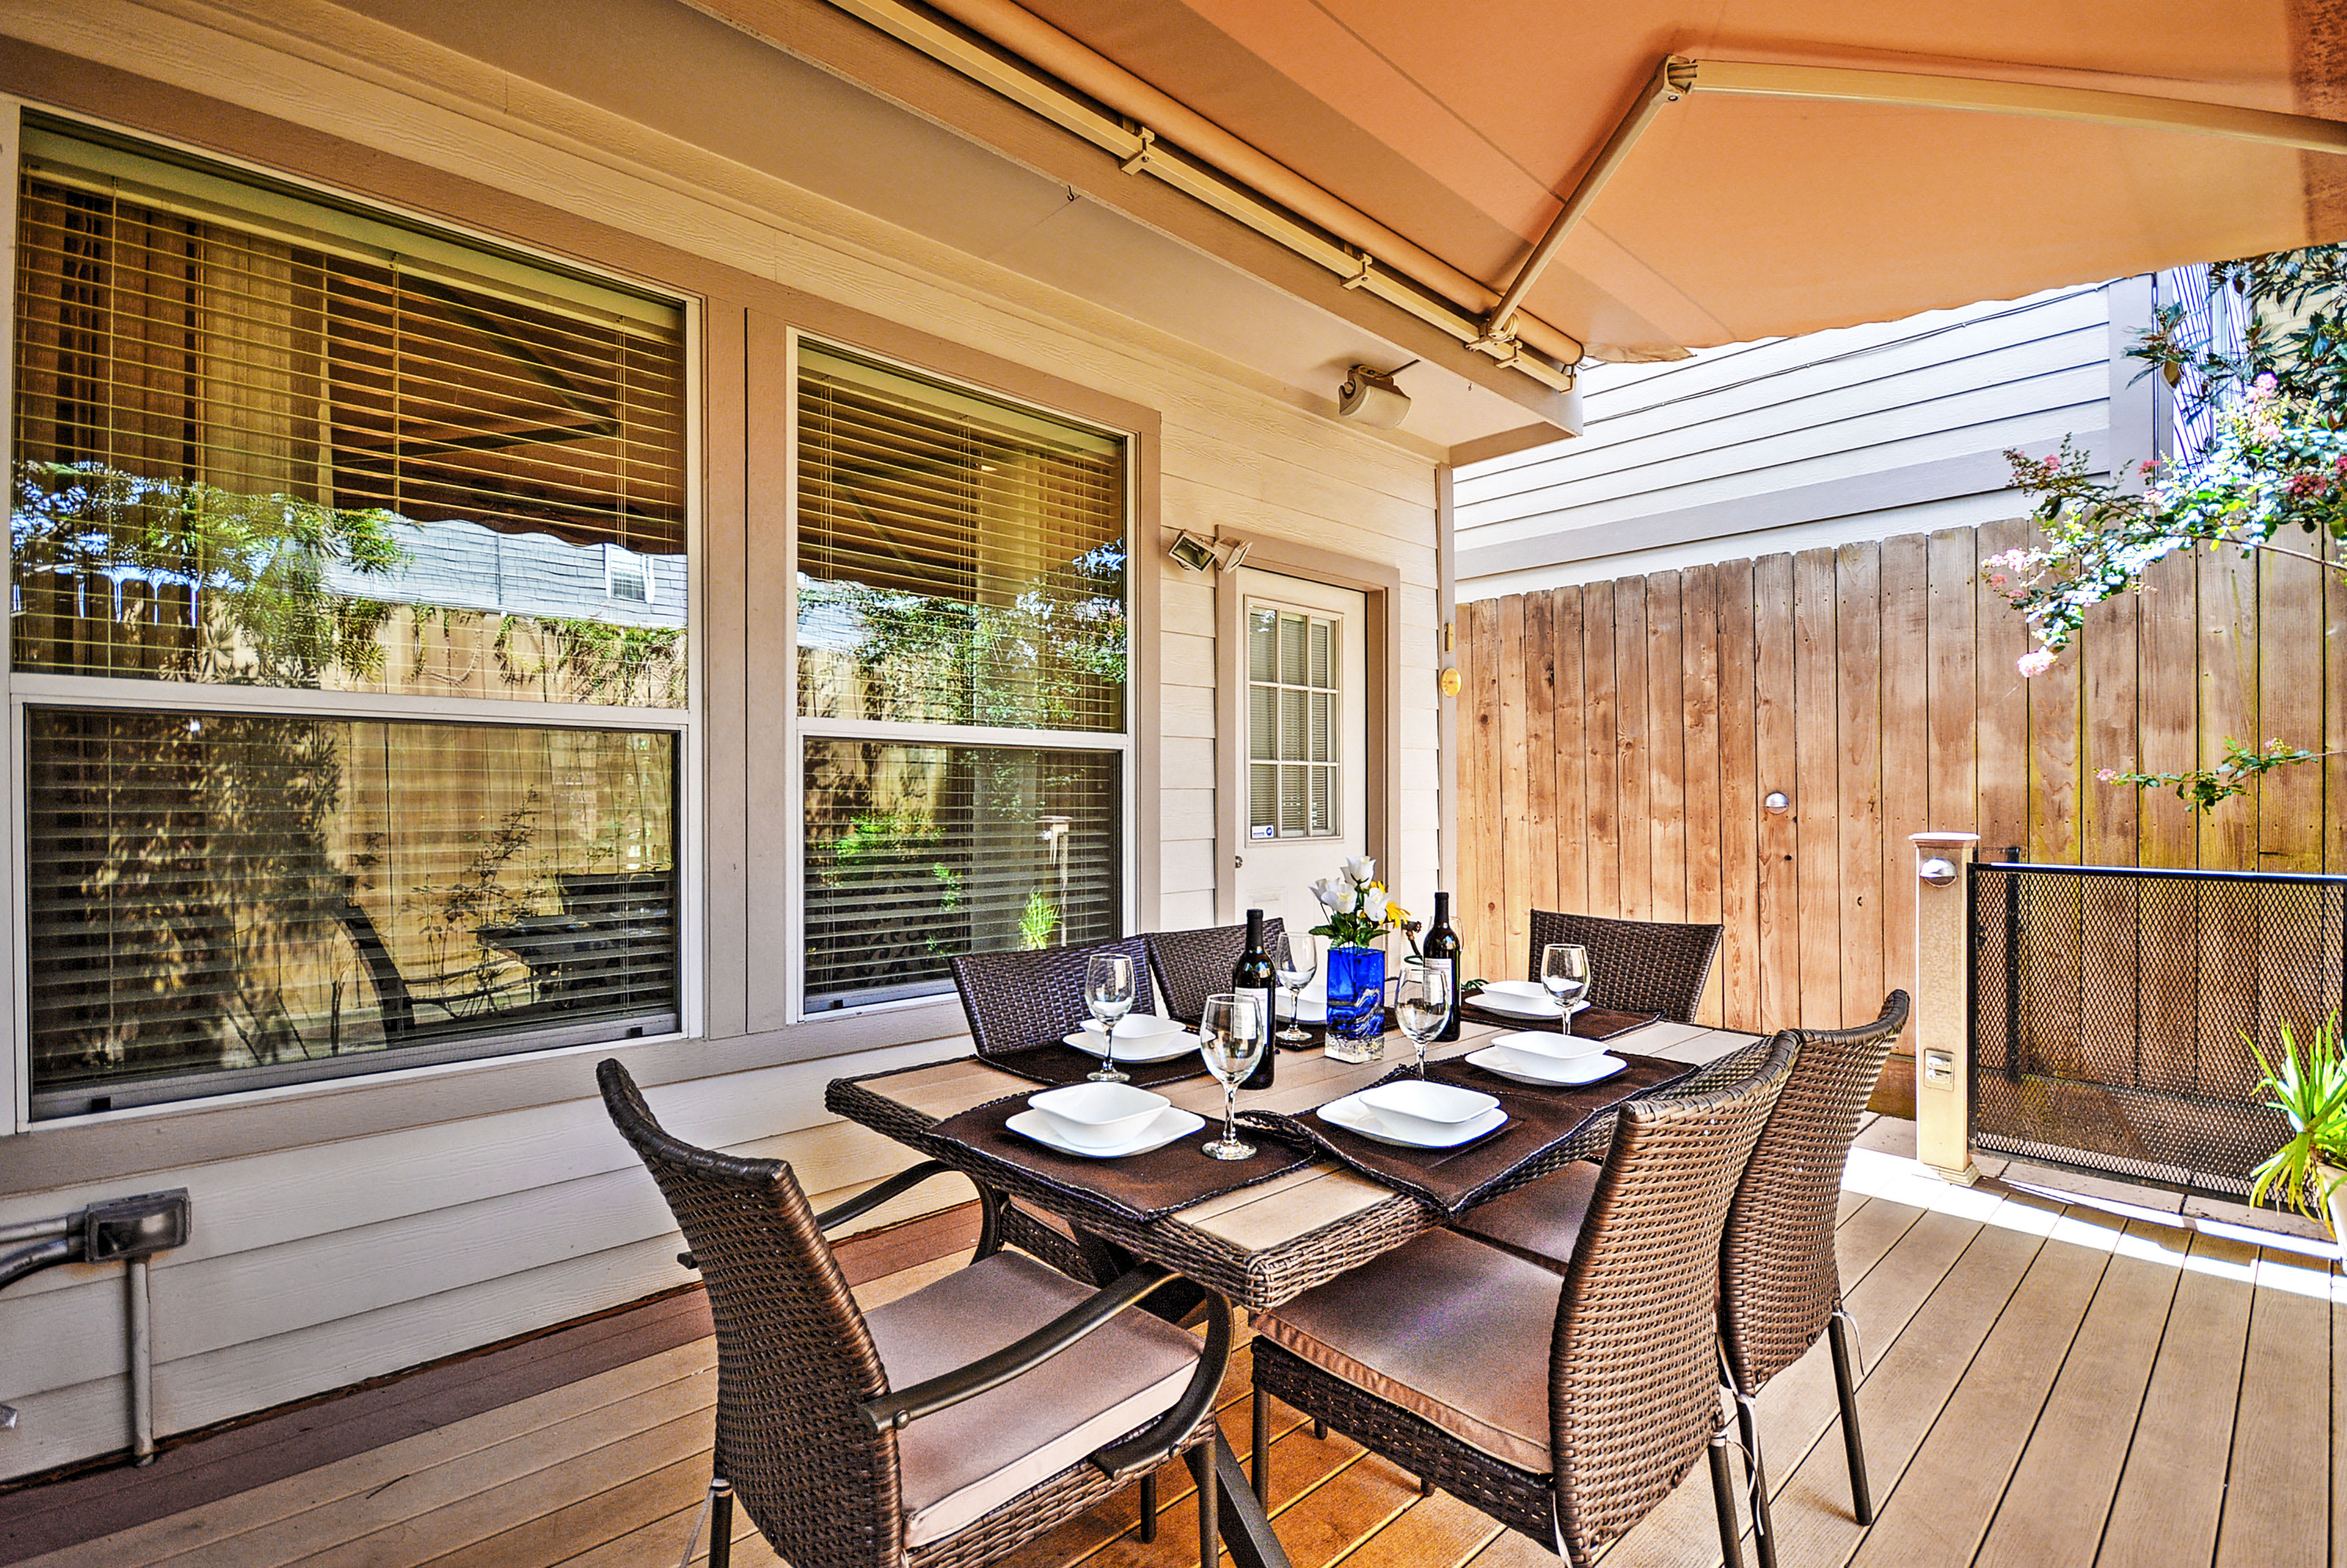 The covered patio offers a great place to enjoy home-cooked meals.